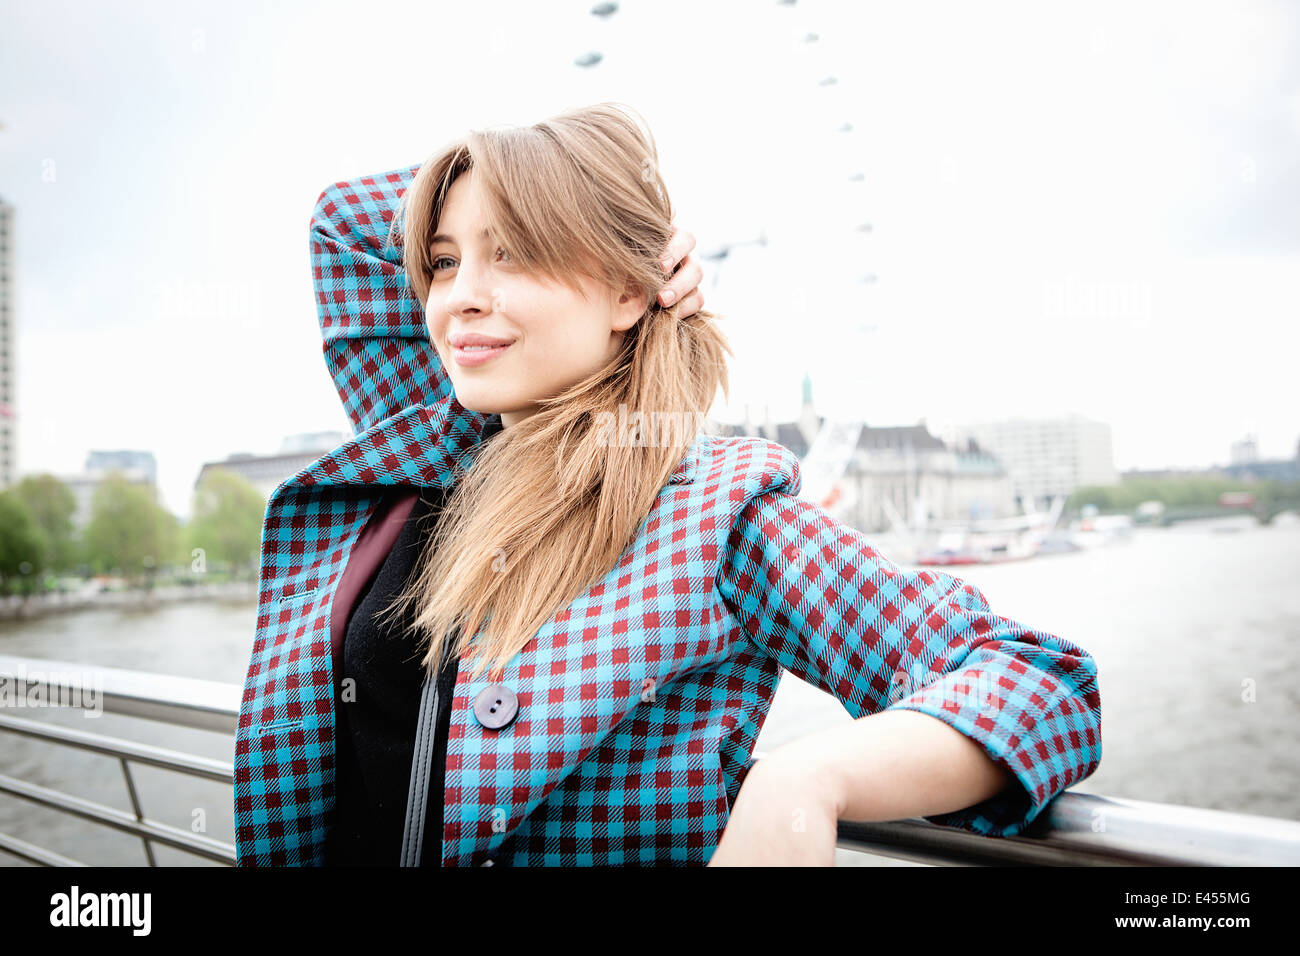 Young female tourist leaning against railings on Golden Jubilee footbridge, London, UK - Stock Image